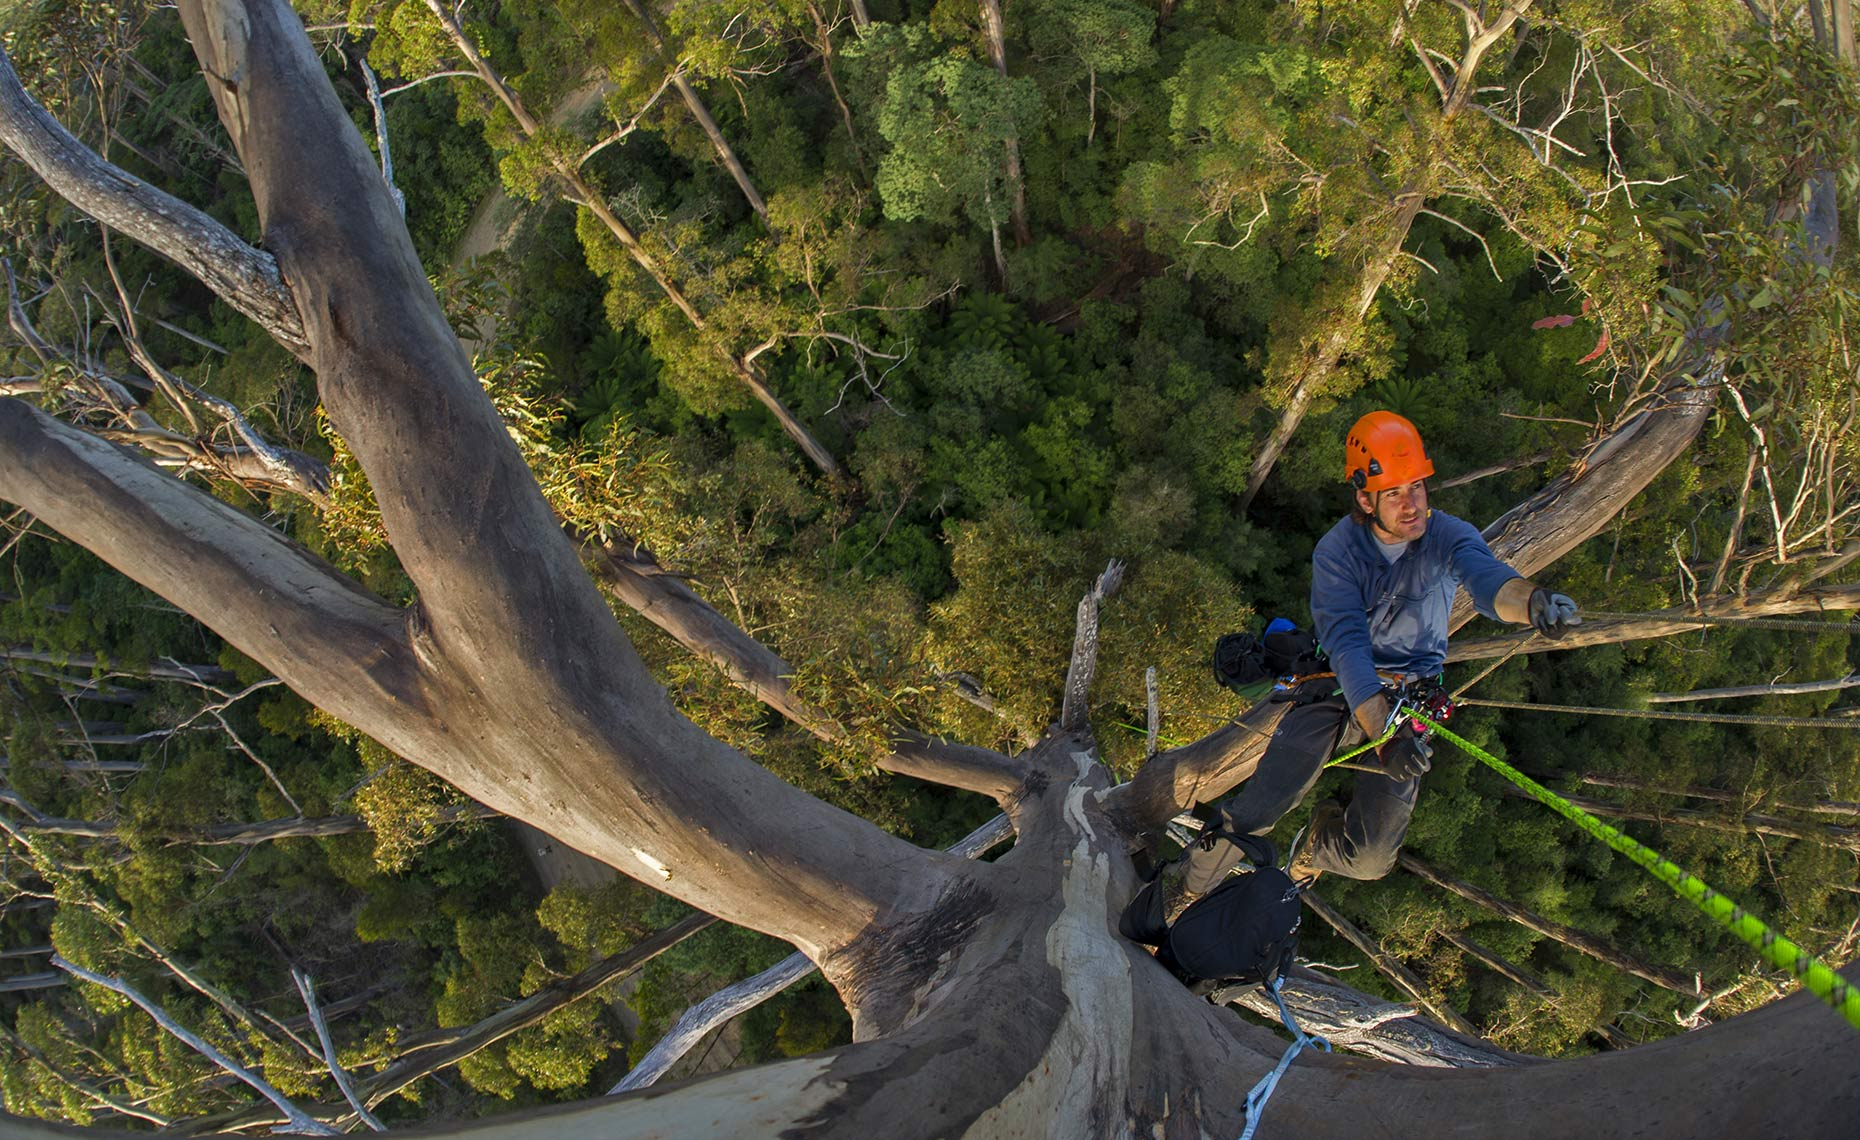 Giant Eucalyptus Trees: National Geographic magazine